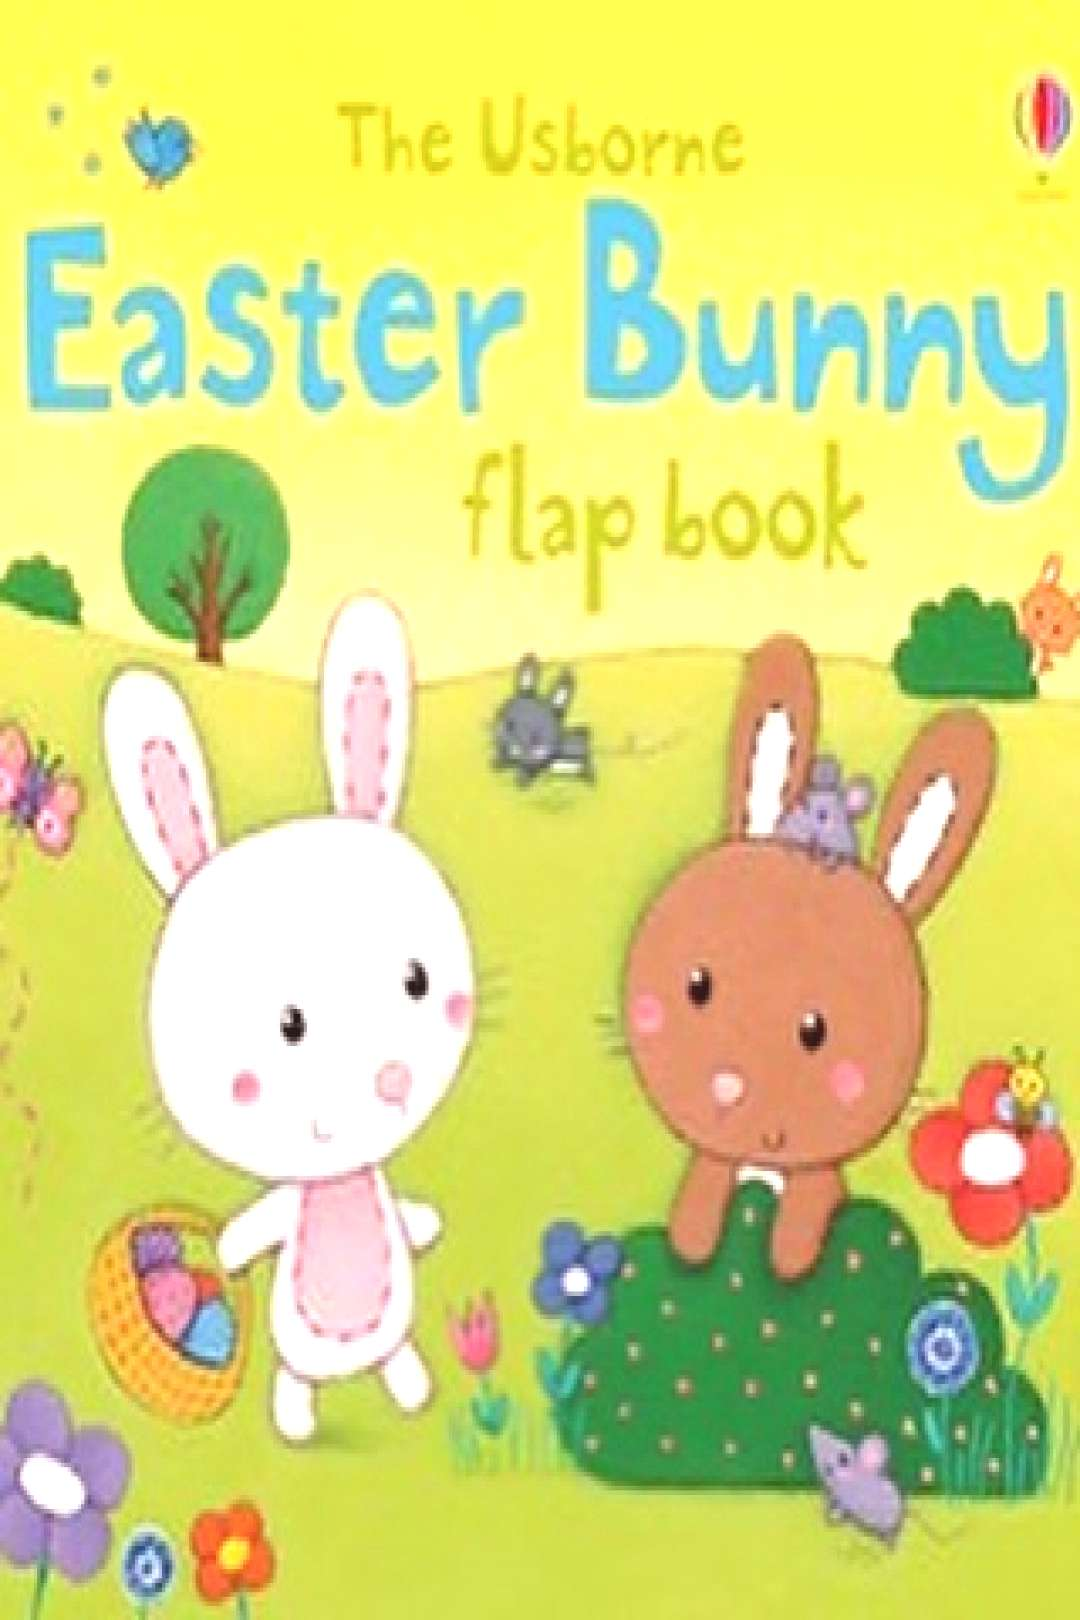 possible text that says 'The Usborne Easter Bu